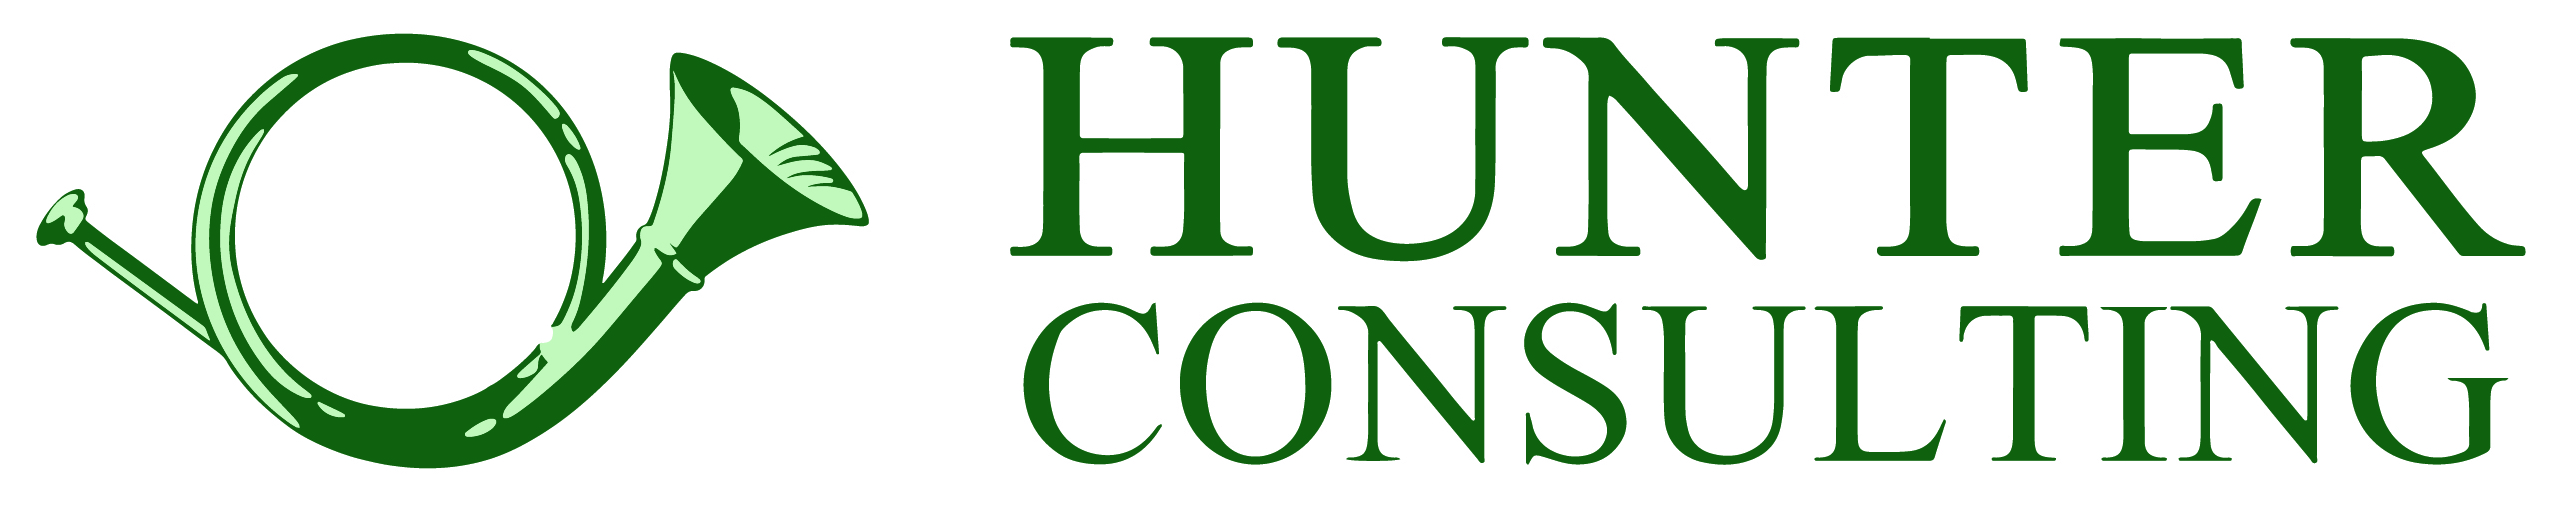 Hunter Consulting